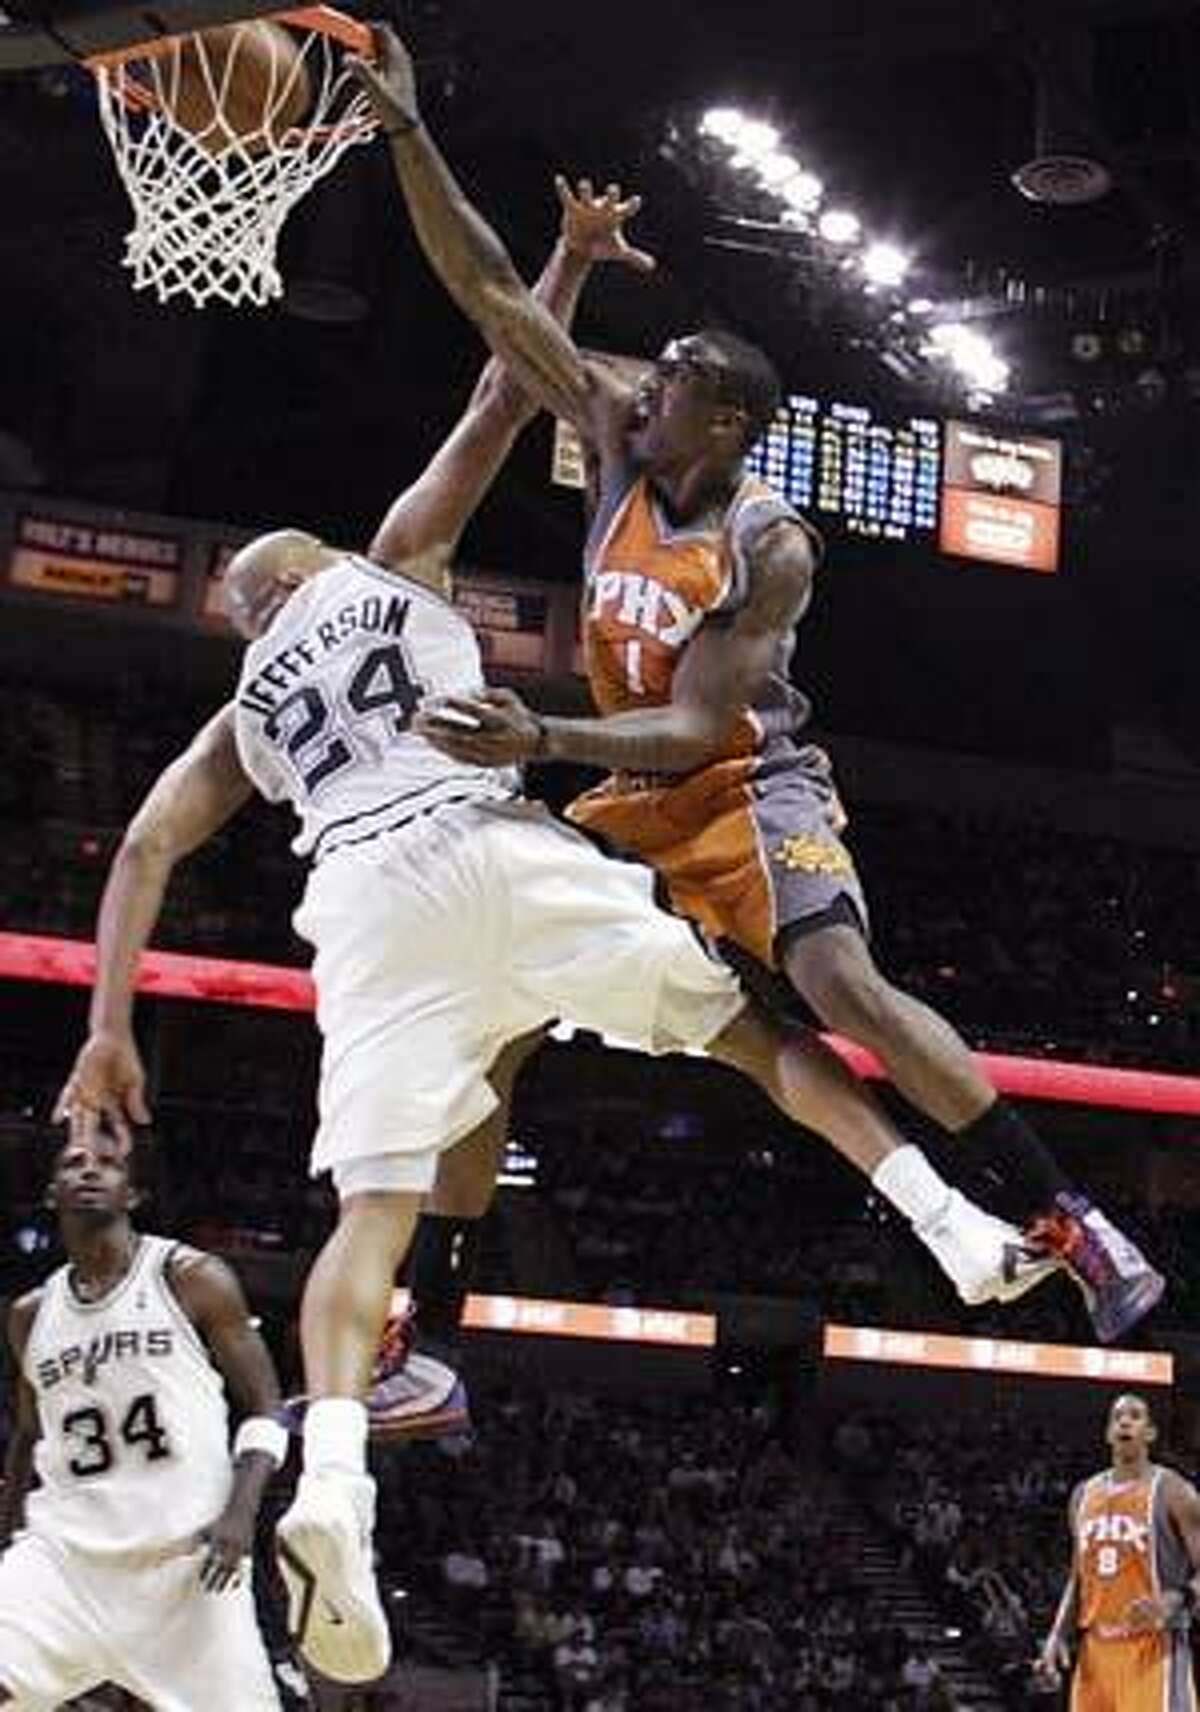 AP Phoenix Suns forward Amare Stoudemire, right, dunks over San Antonio Spurs forward Richard Jefferson during the second half of Sunday's game in San Antonio. Jefferson and the Spurs got the last laugh, however, winning the game 113-110.